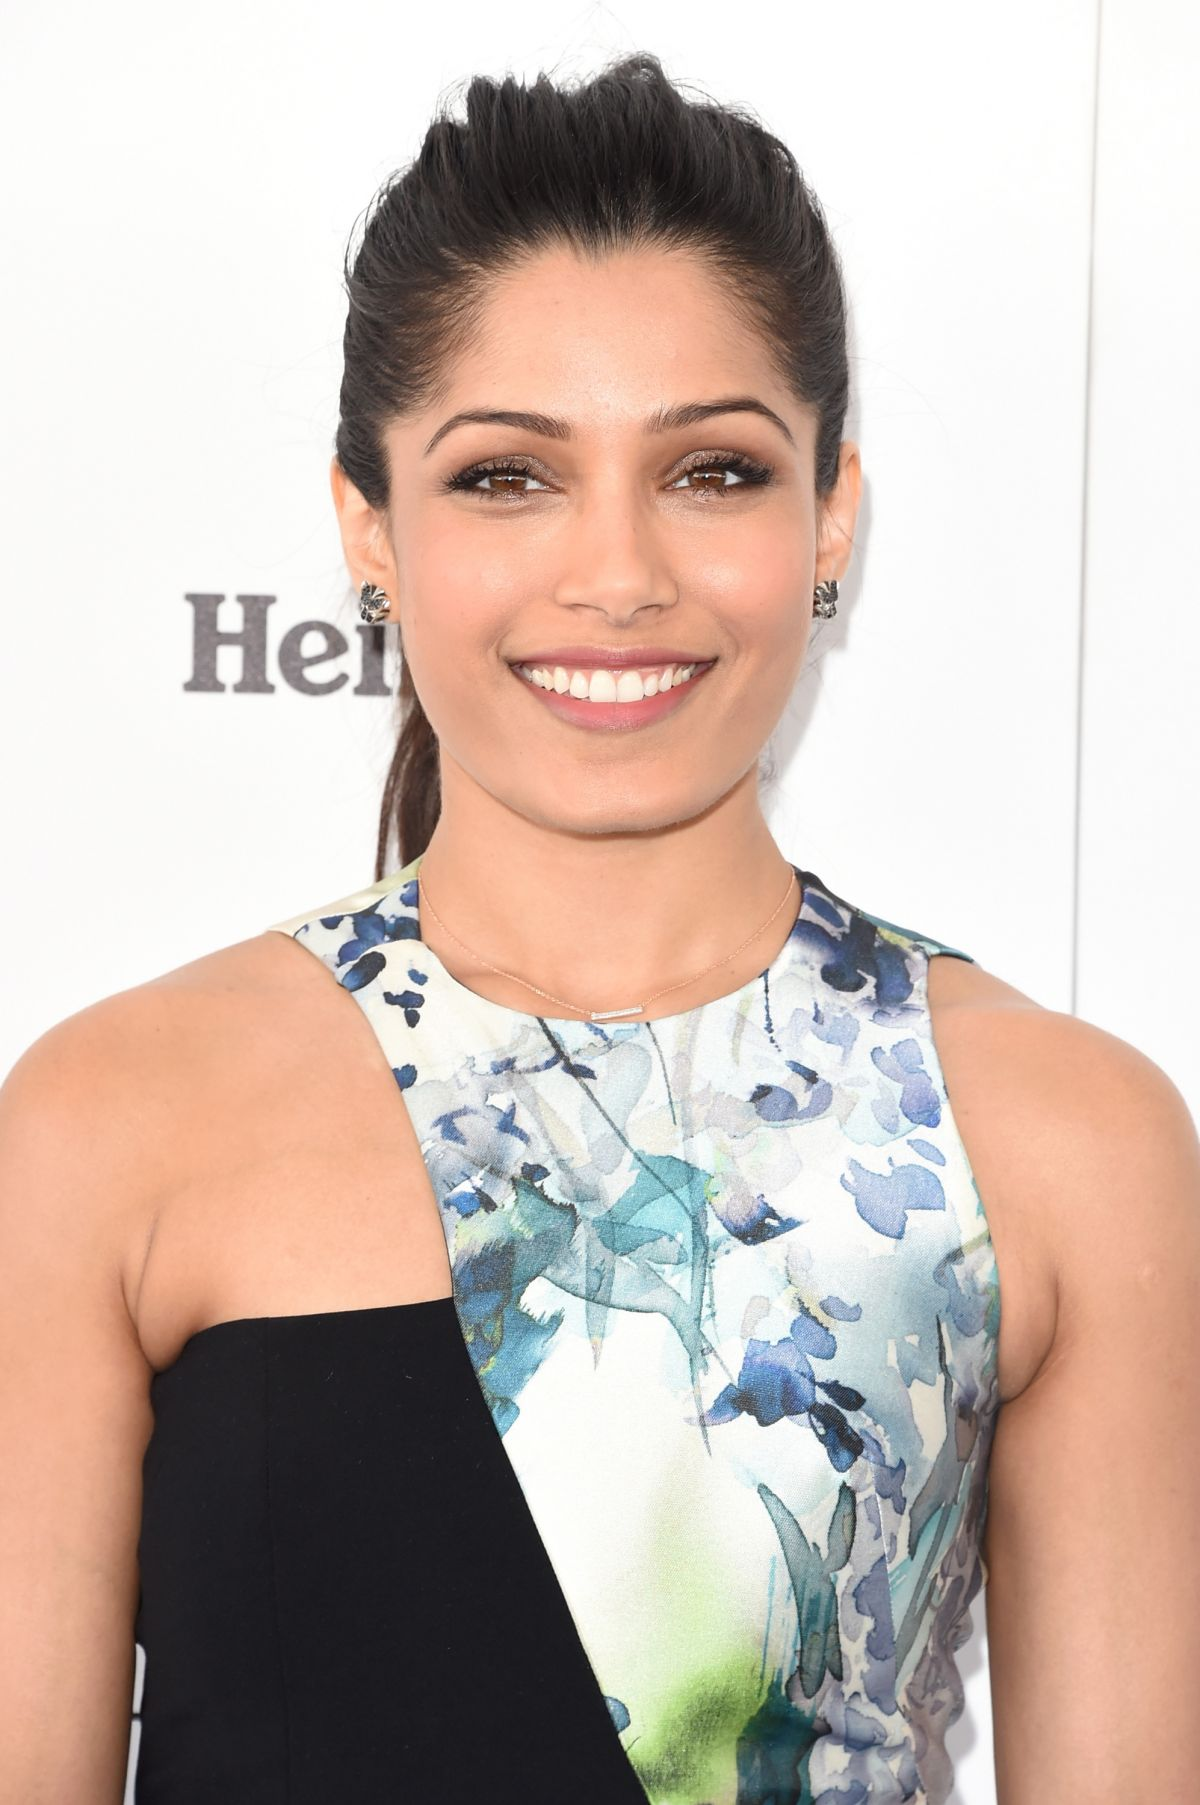 FREIDA PINTO at Film Independent Spirit Awards in Santa Monica 02/27 ...